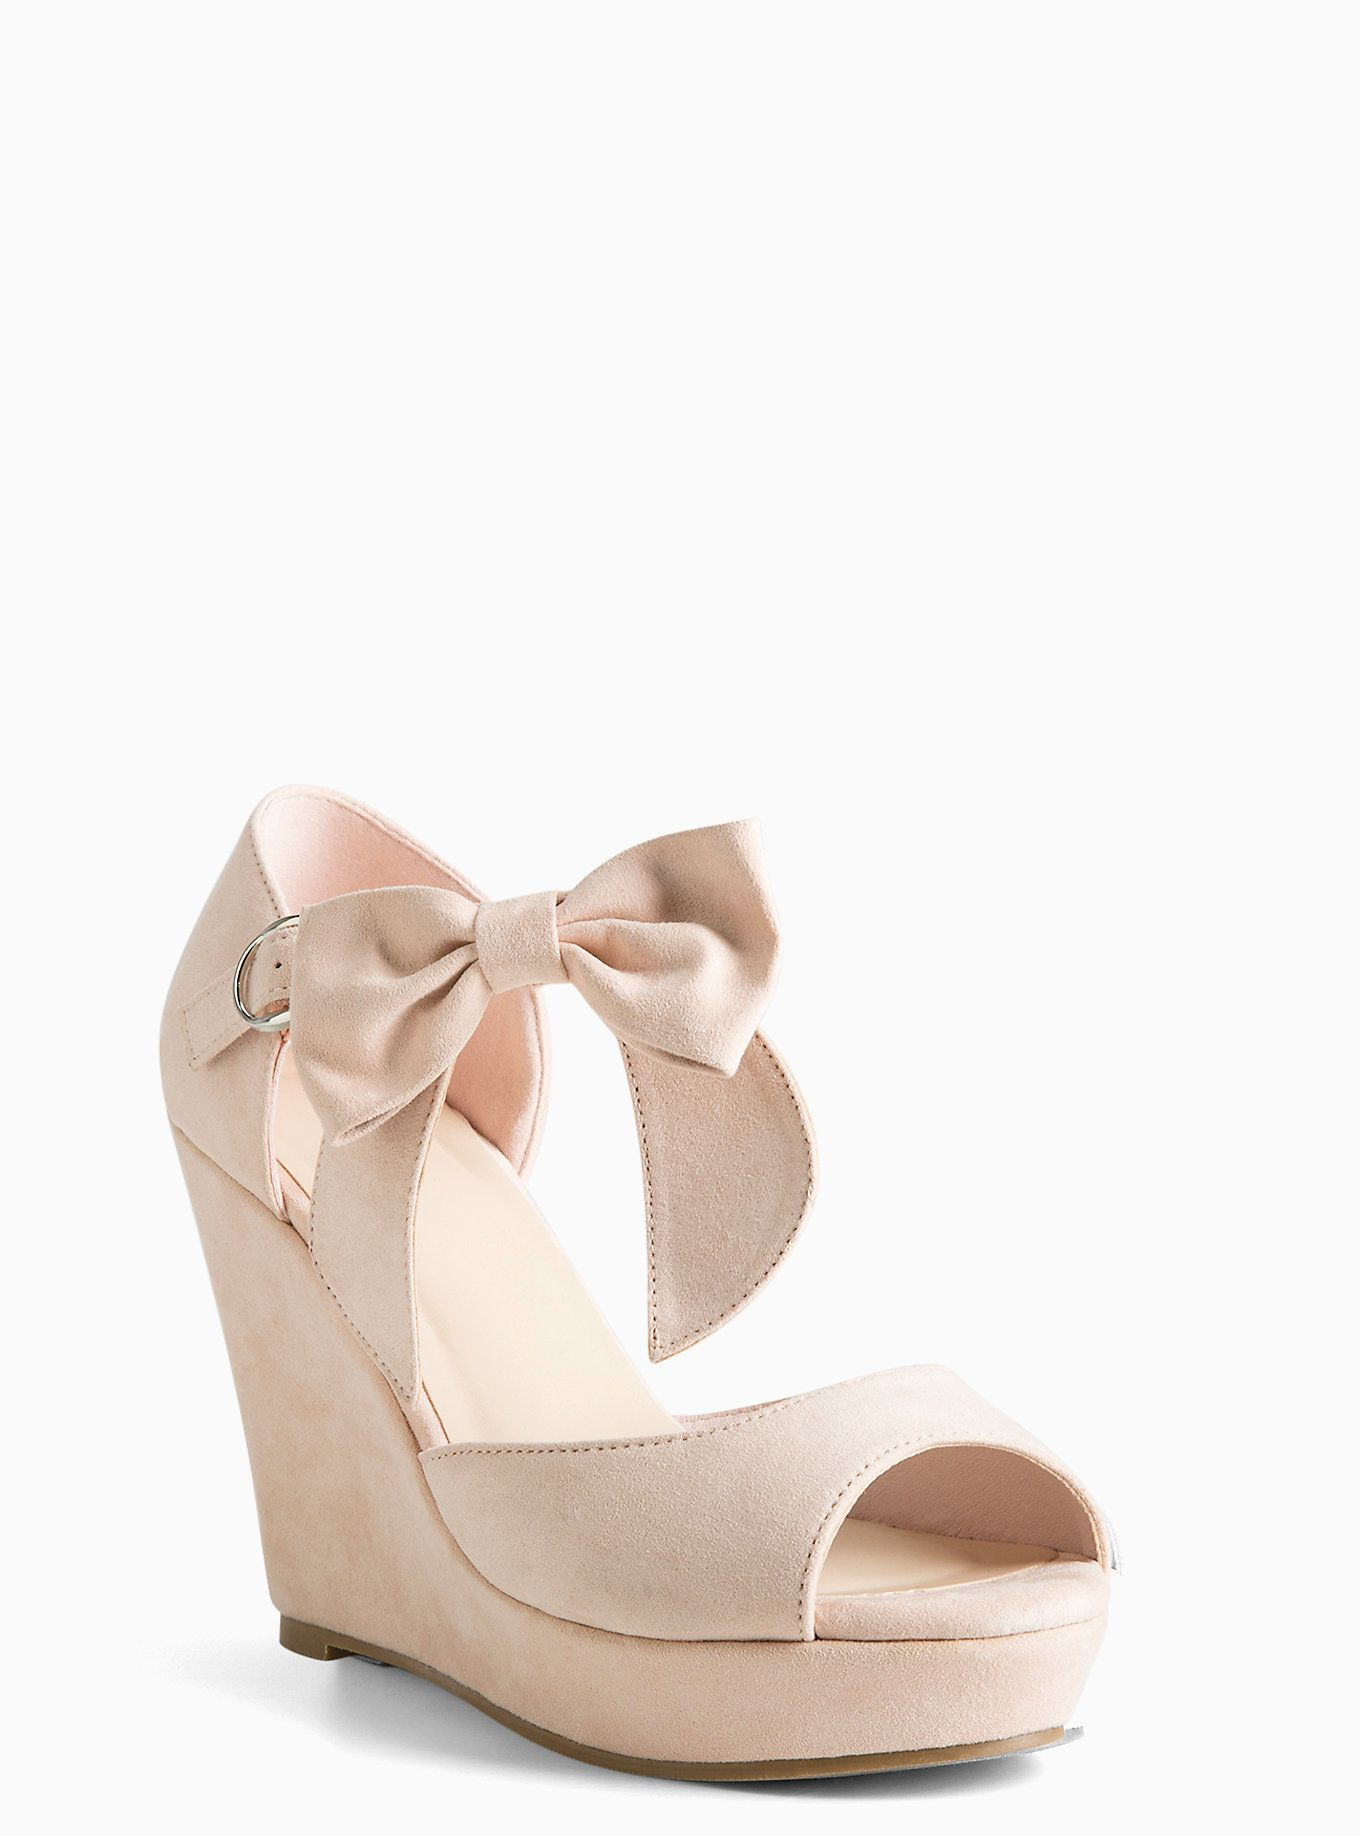 Ankle Bow Wedges Wide Width Blush Wedding Shoes Blush Wedges